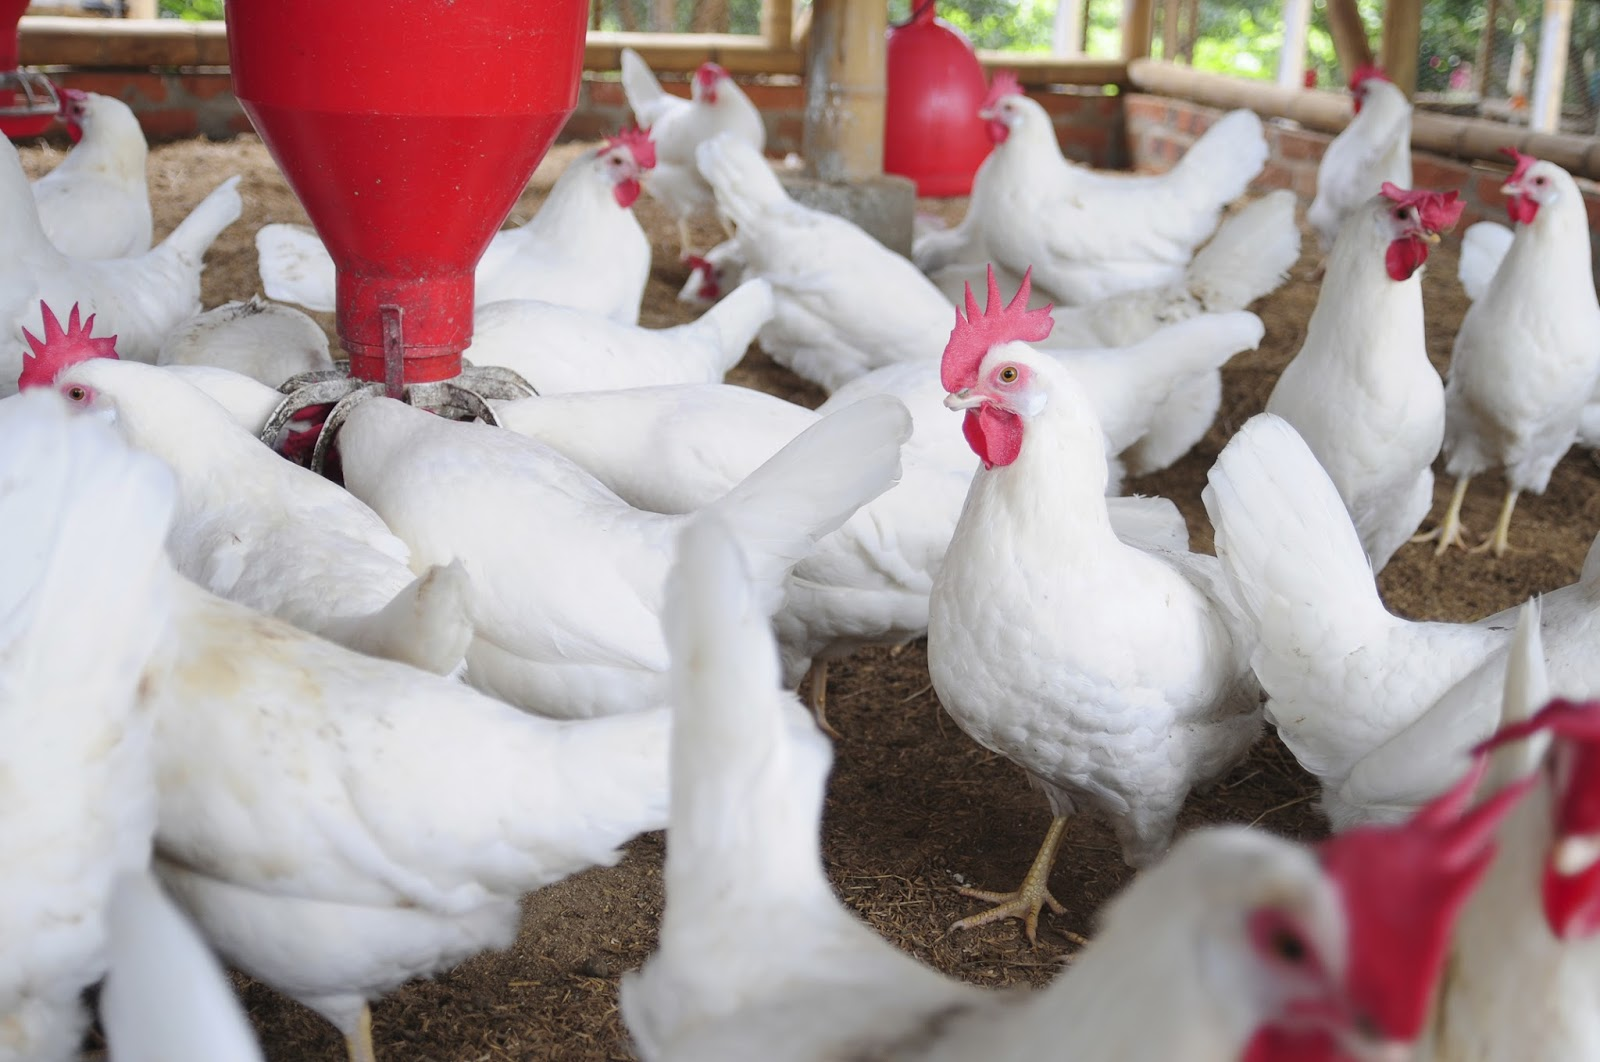 Business plan for a poultry farm